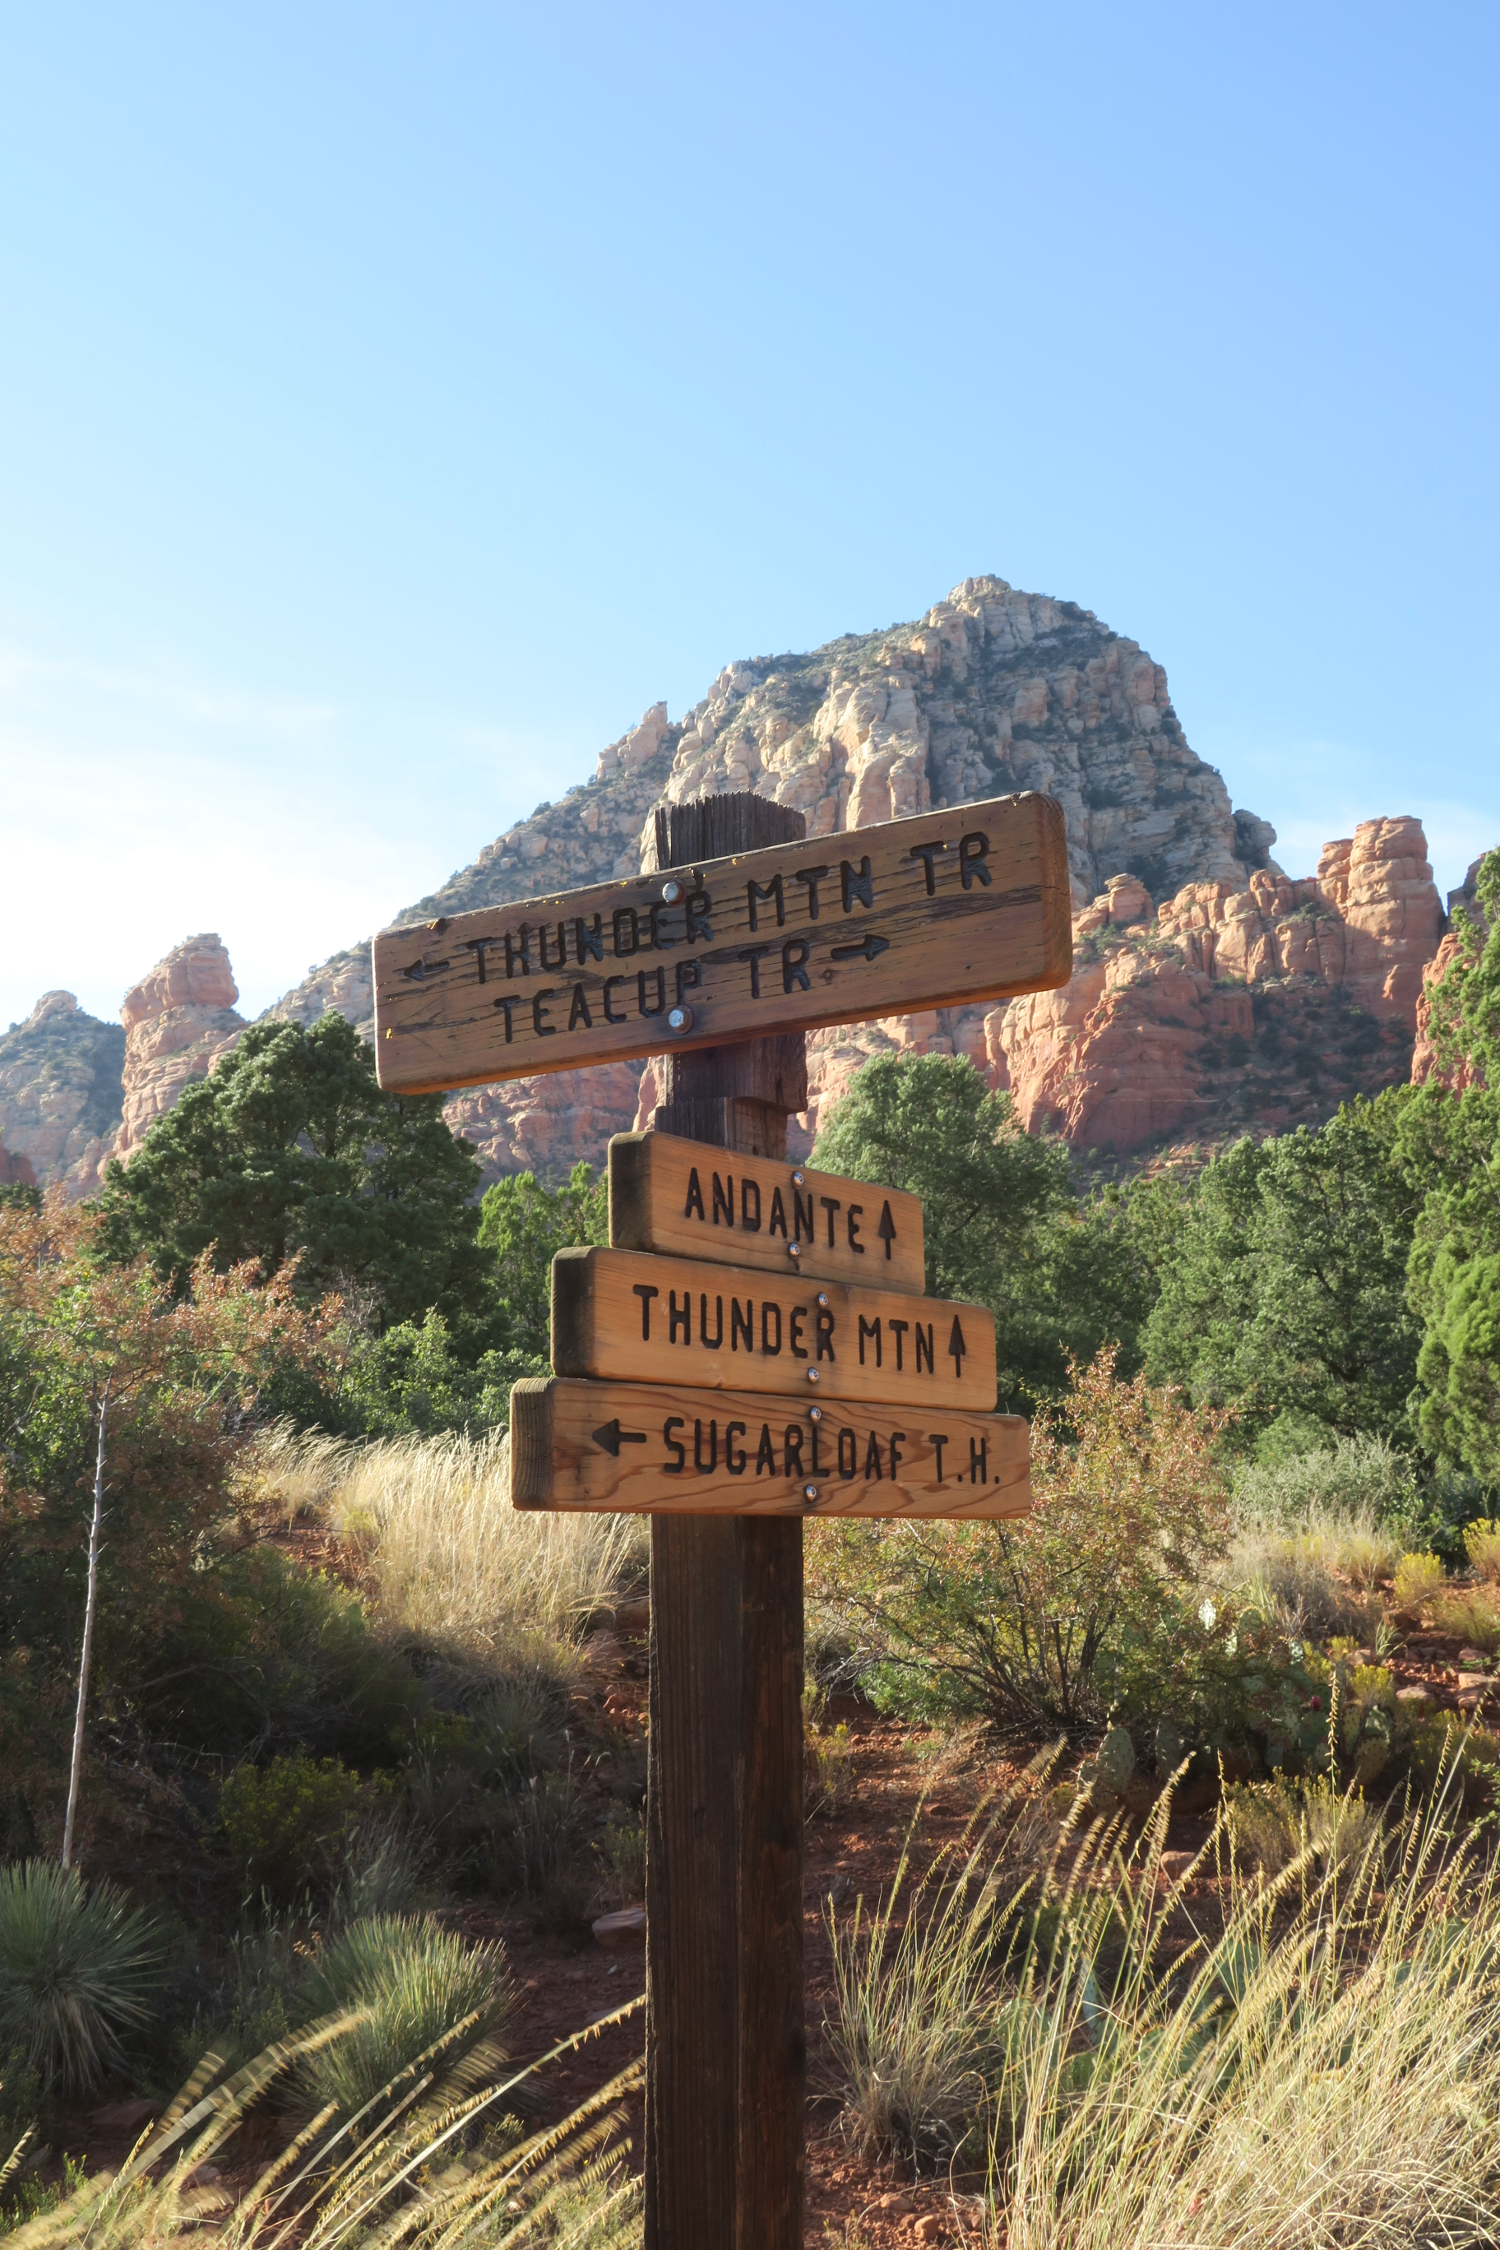 Signs pointing to hiking trails